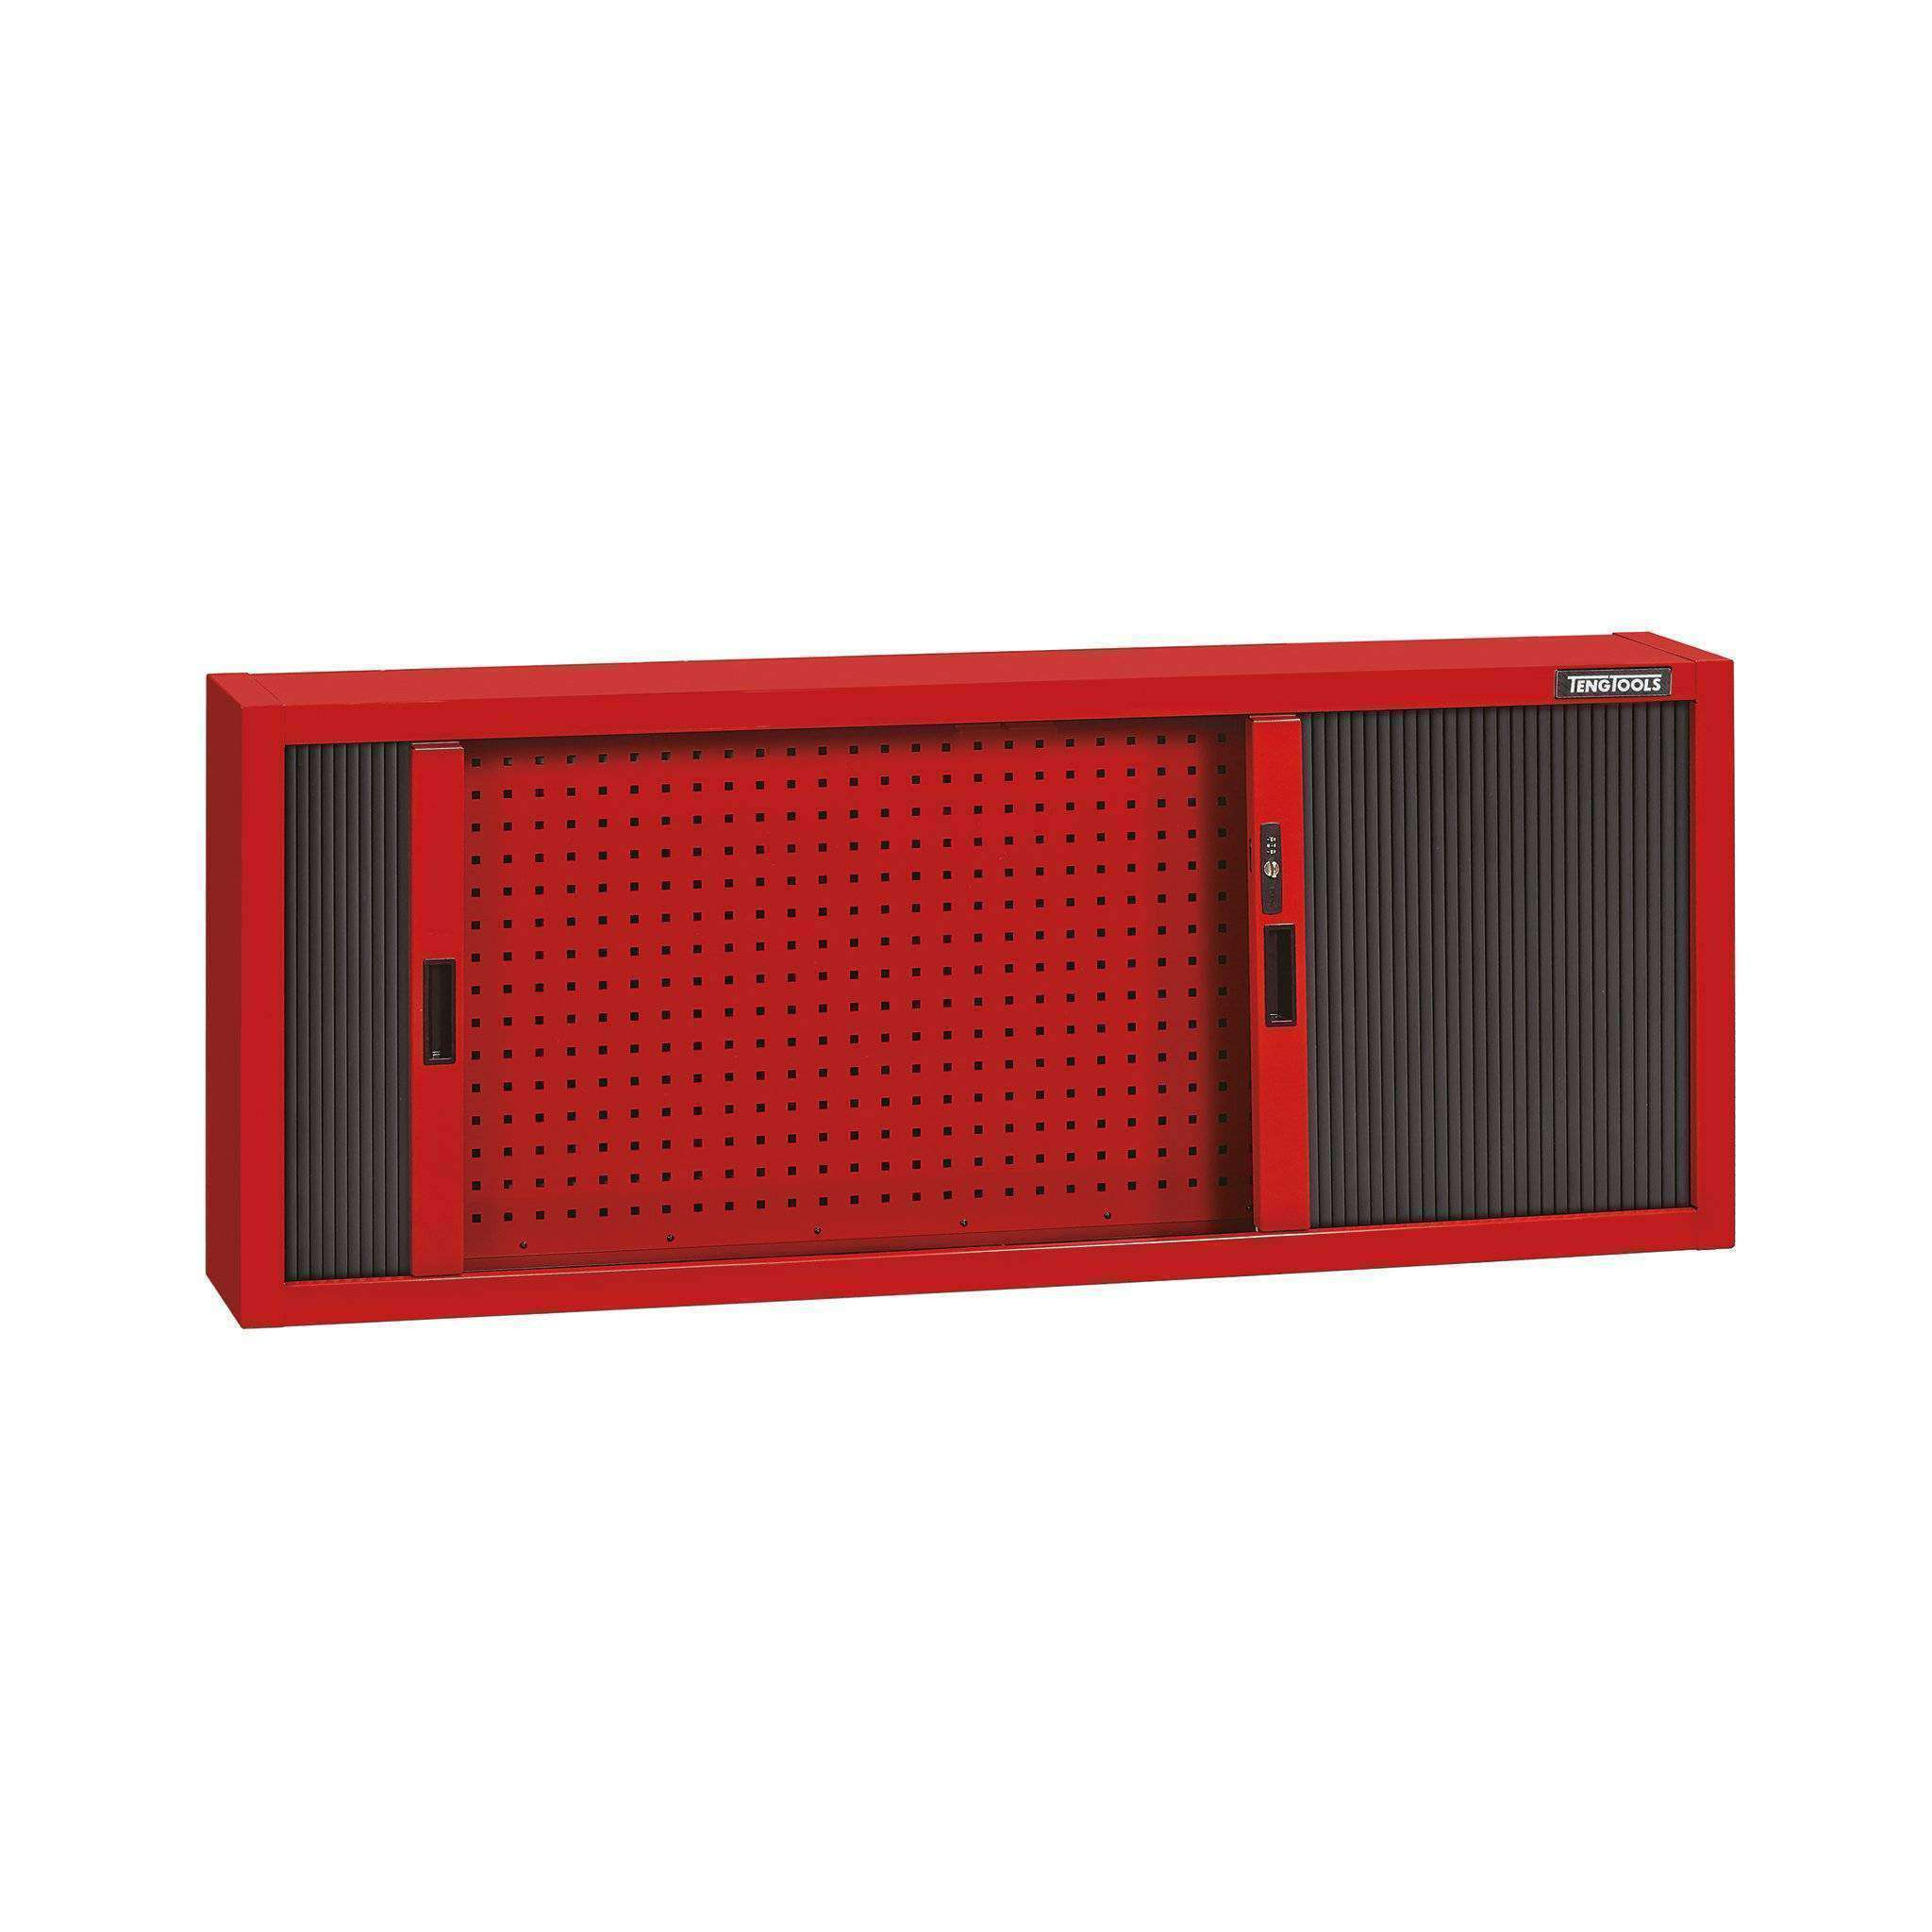 Teng Tools - 1.8m Wide Fully Lockable Wall Hanging Tool Cabinet - TEN-O-TCB180 - Teng Tools USA